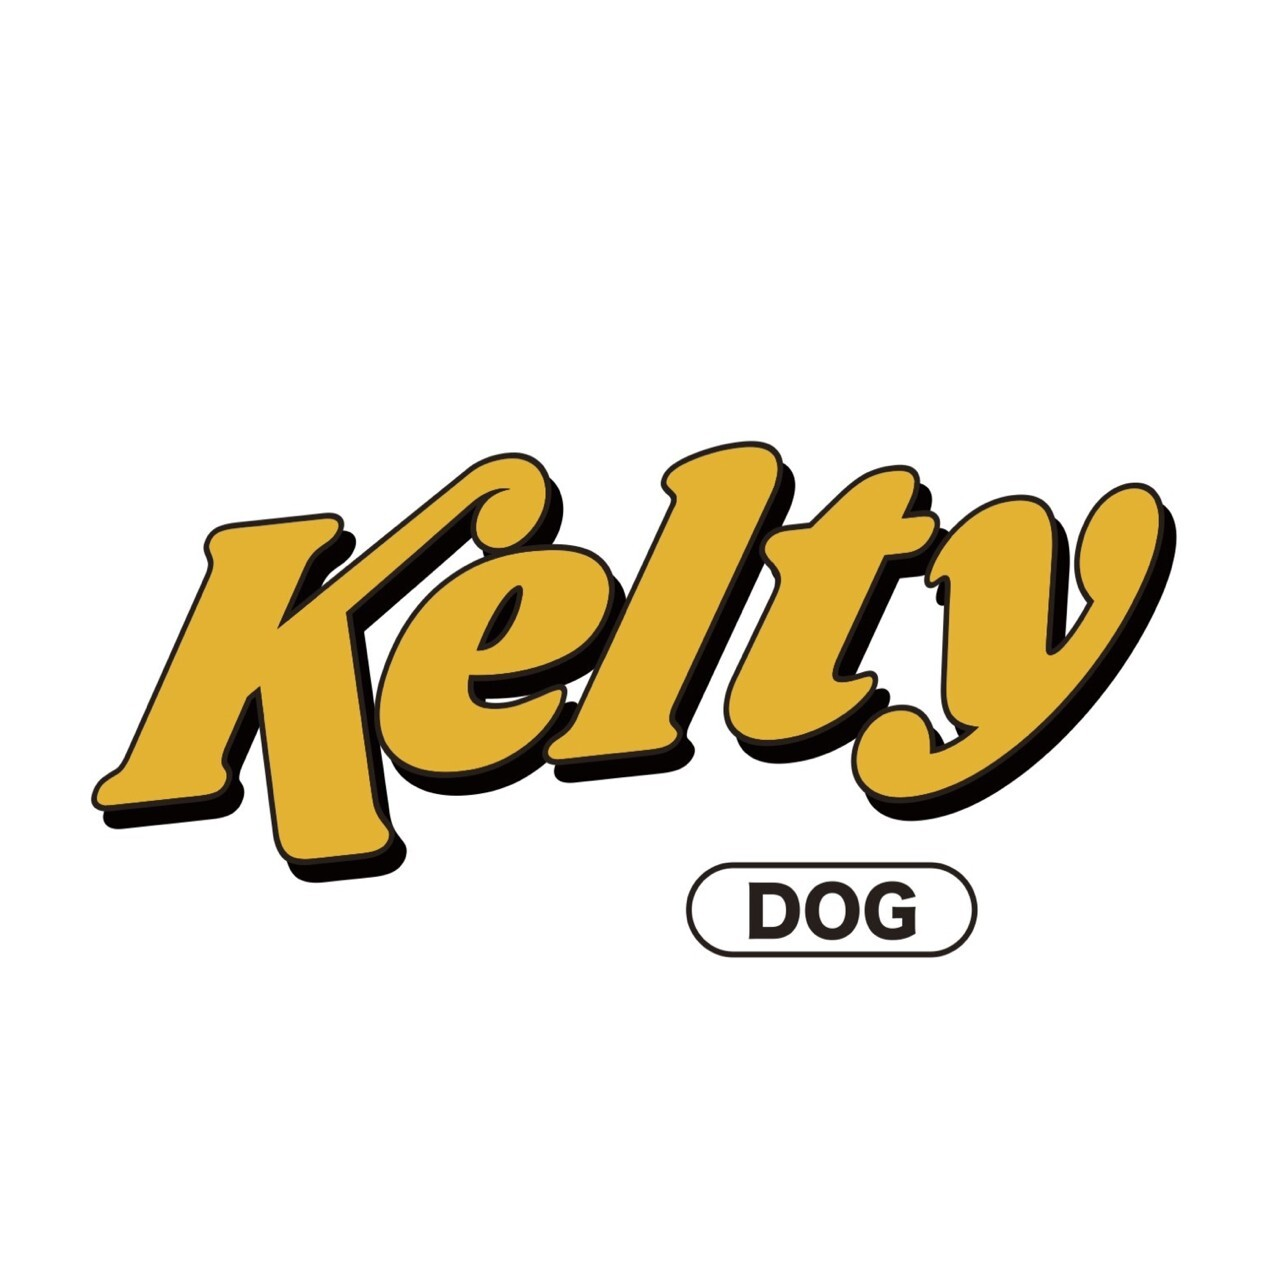 Kelty DOG Online Store